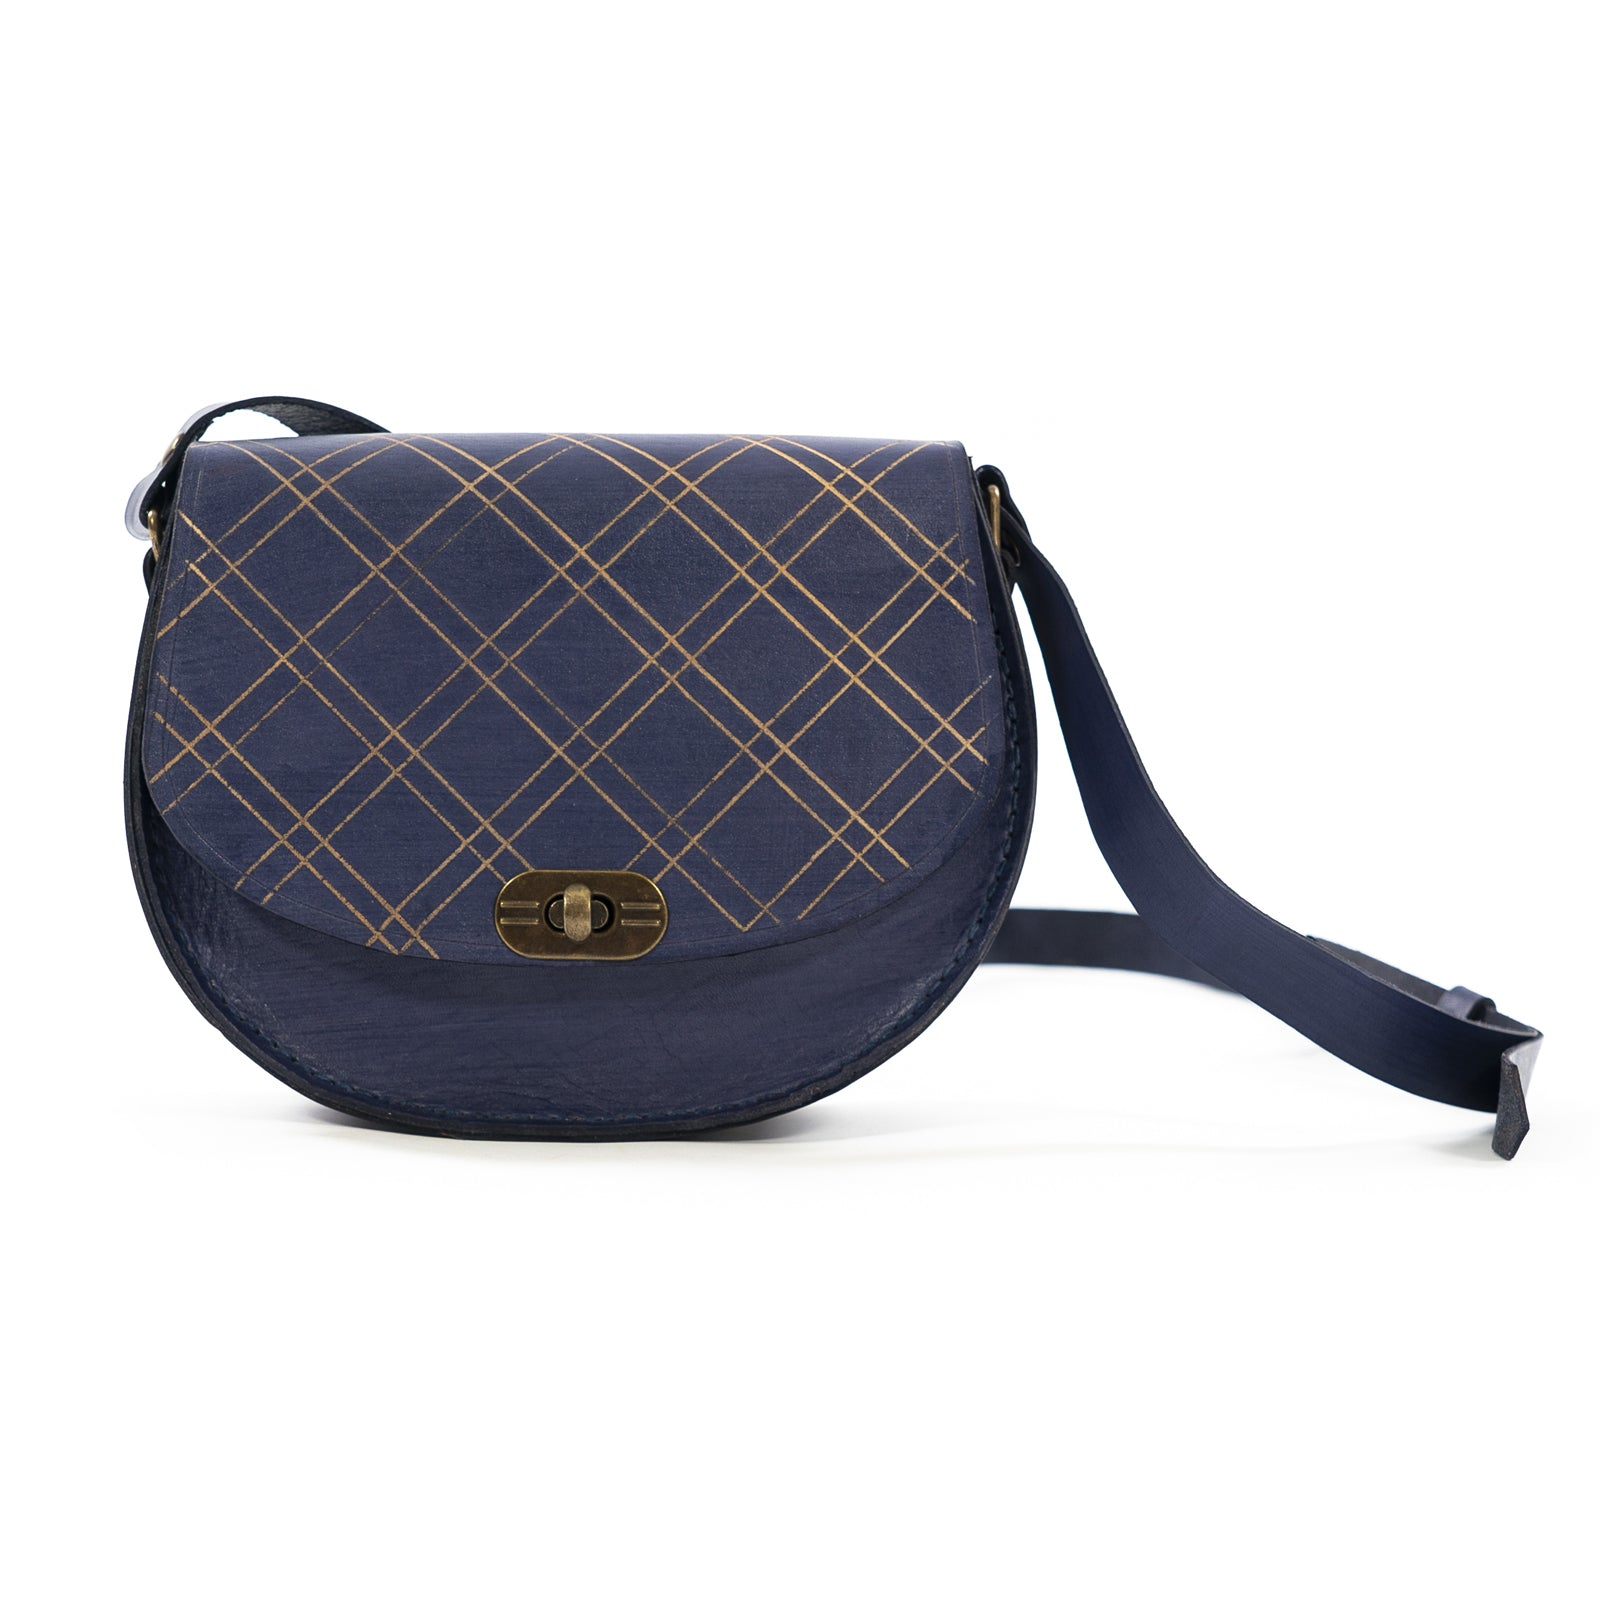 Derifix Joya Navy Blue Handmade Women's Leather Bag